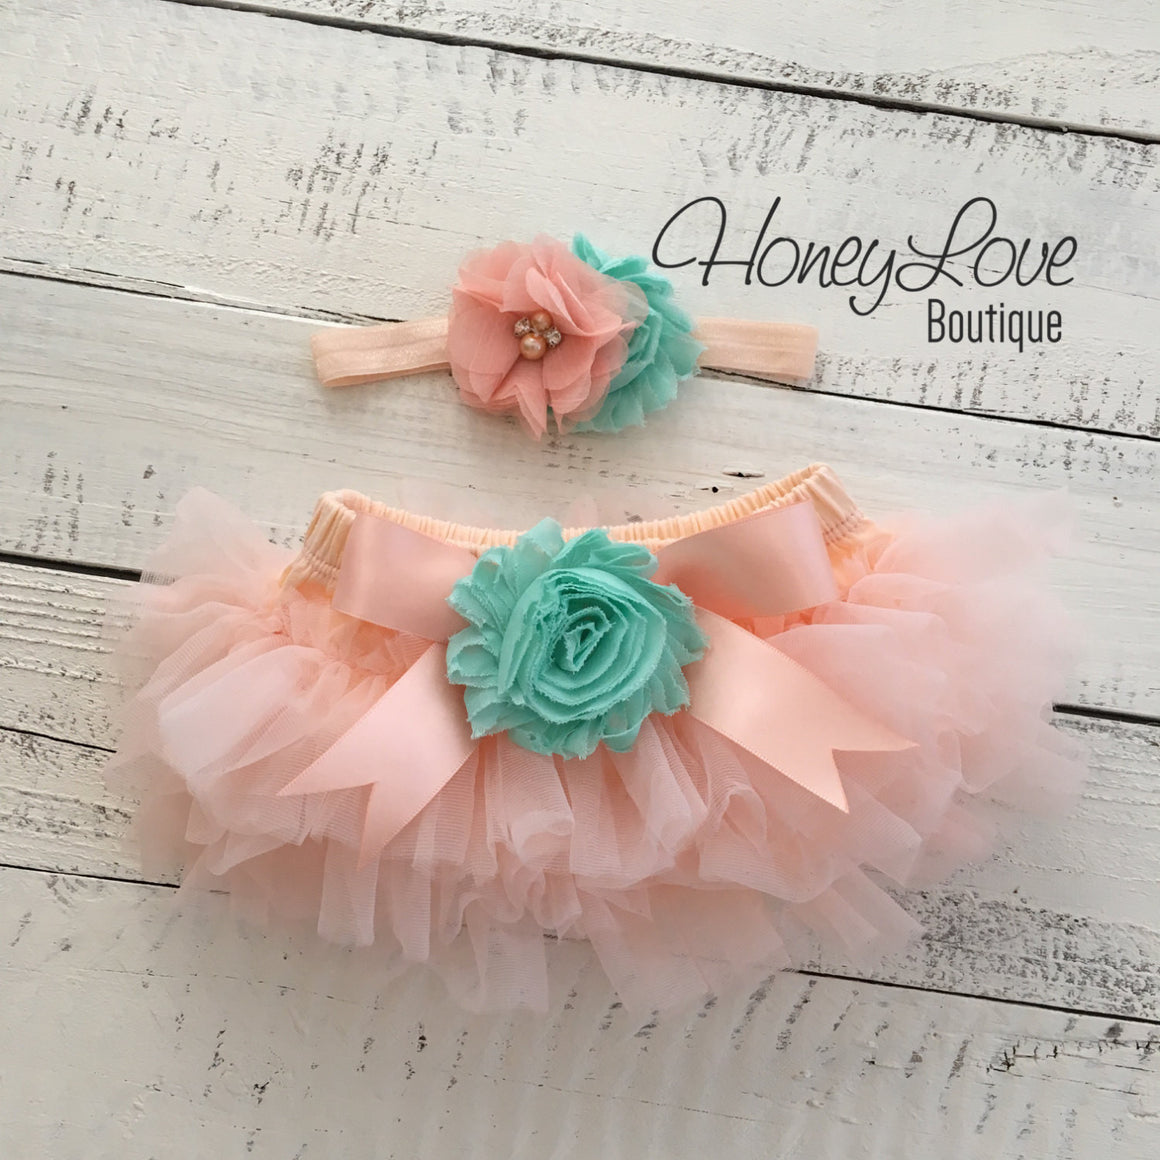 Peach and Mint/Aqua tutu skirt bloomers and headband - Embellished bloomers